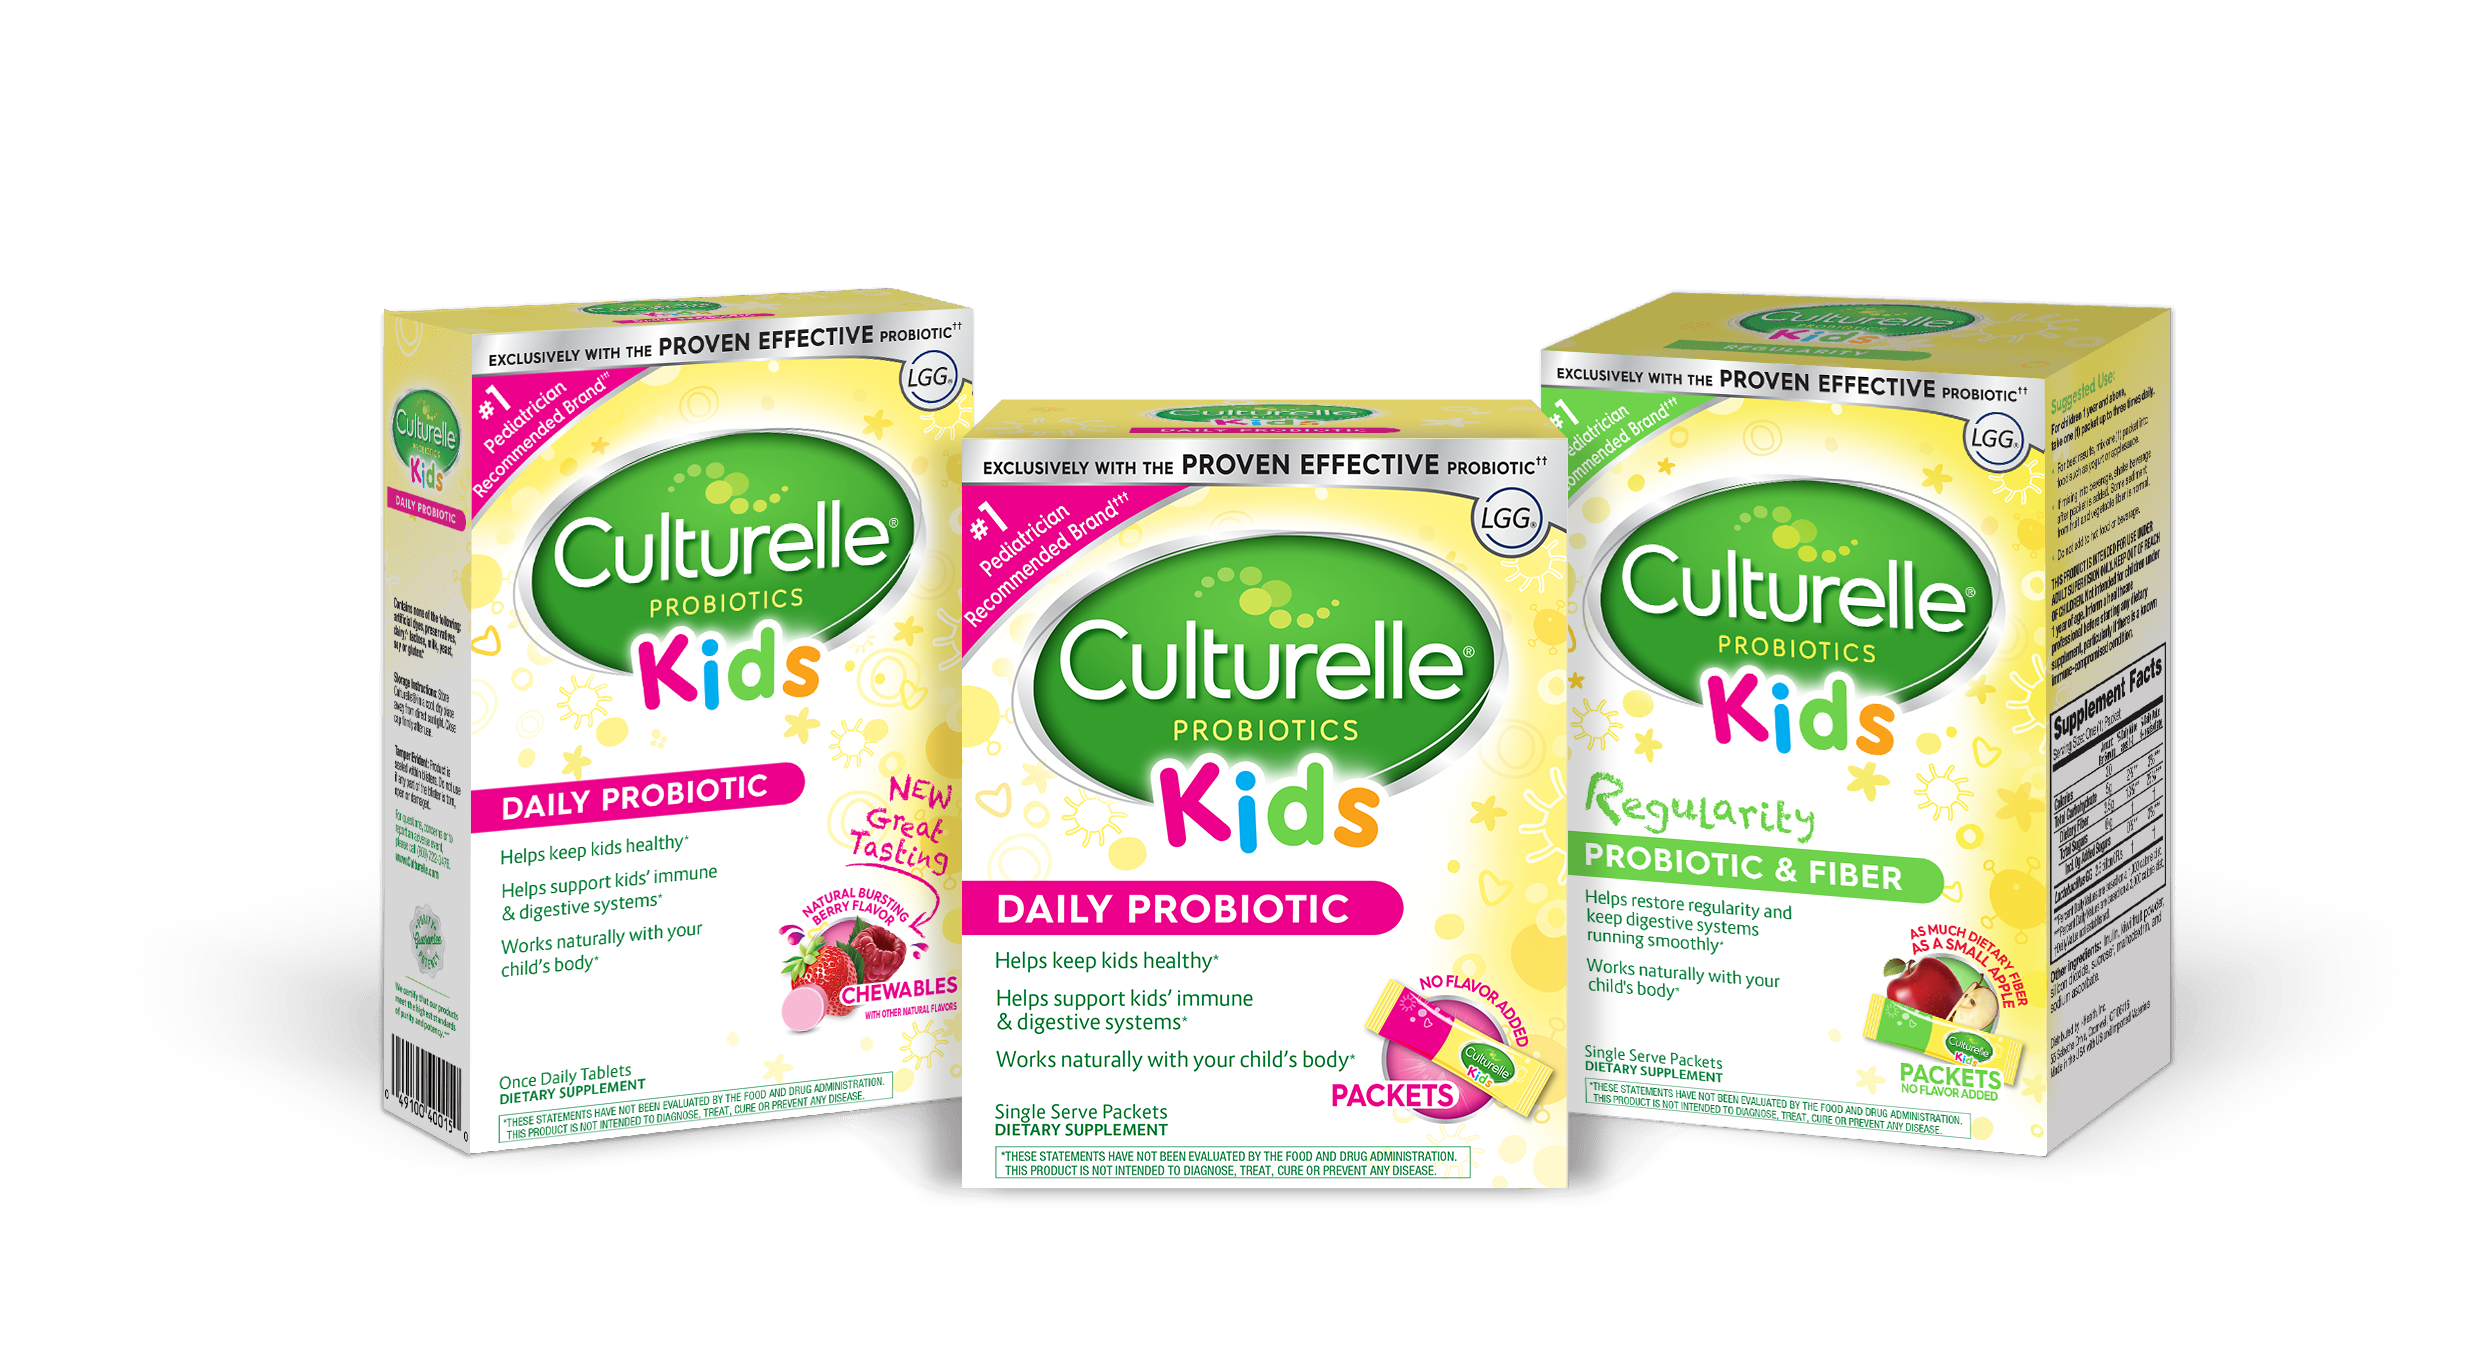 Three Culturelle® Kids boxes